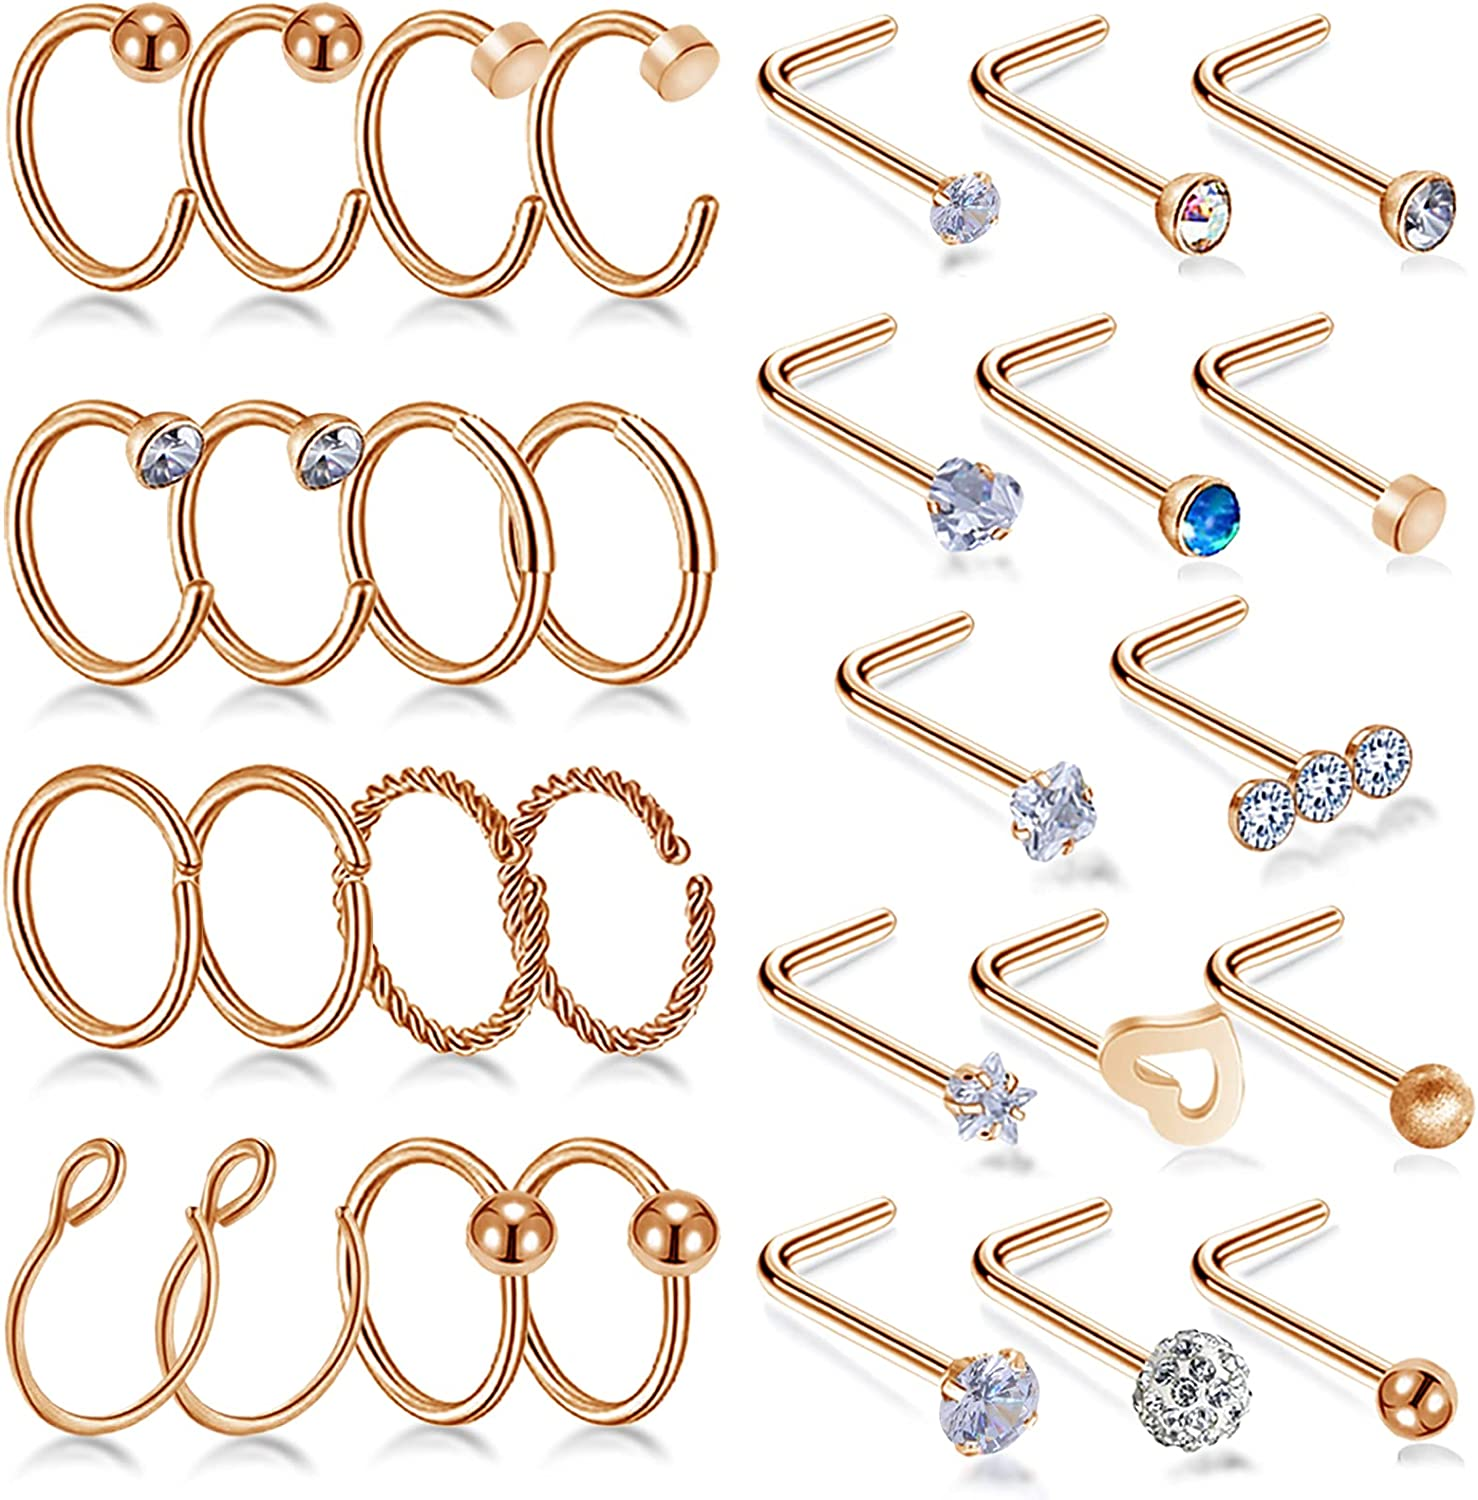 Carper 20g Nose Rings Studs L Shaped Screw Straight Nose Rings for Women Surgical Steel Nostril Piercing Jewelry